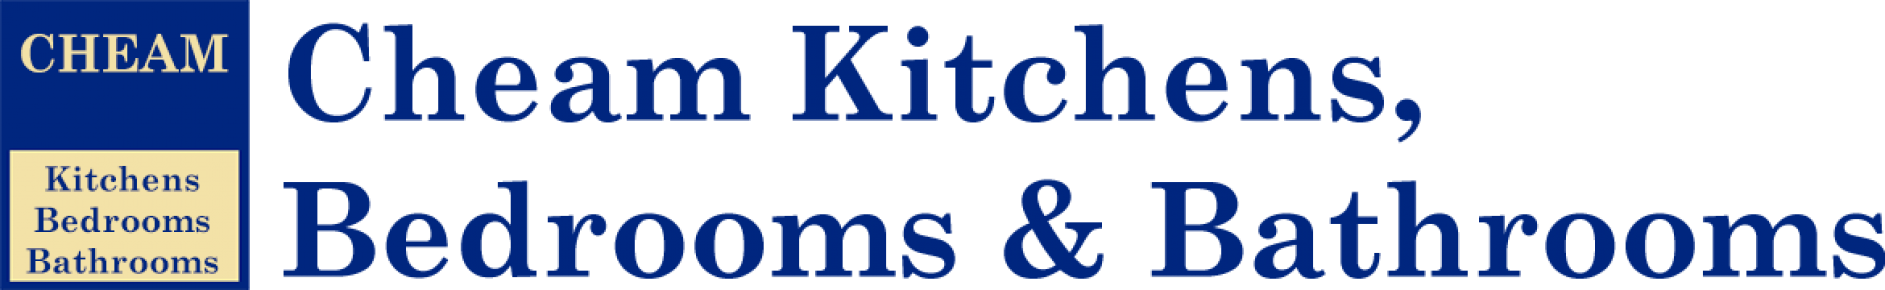 Cheam Kitchens, Bedrooms & Bathrooms